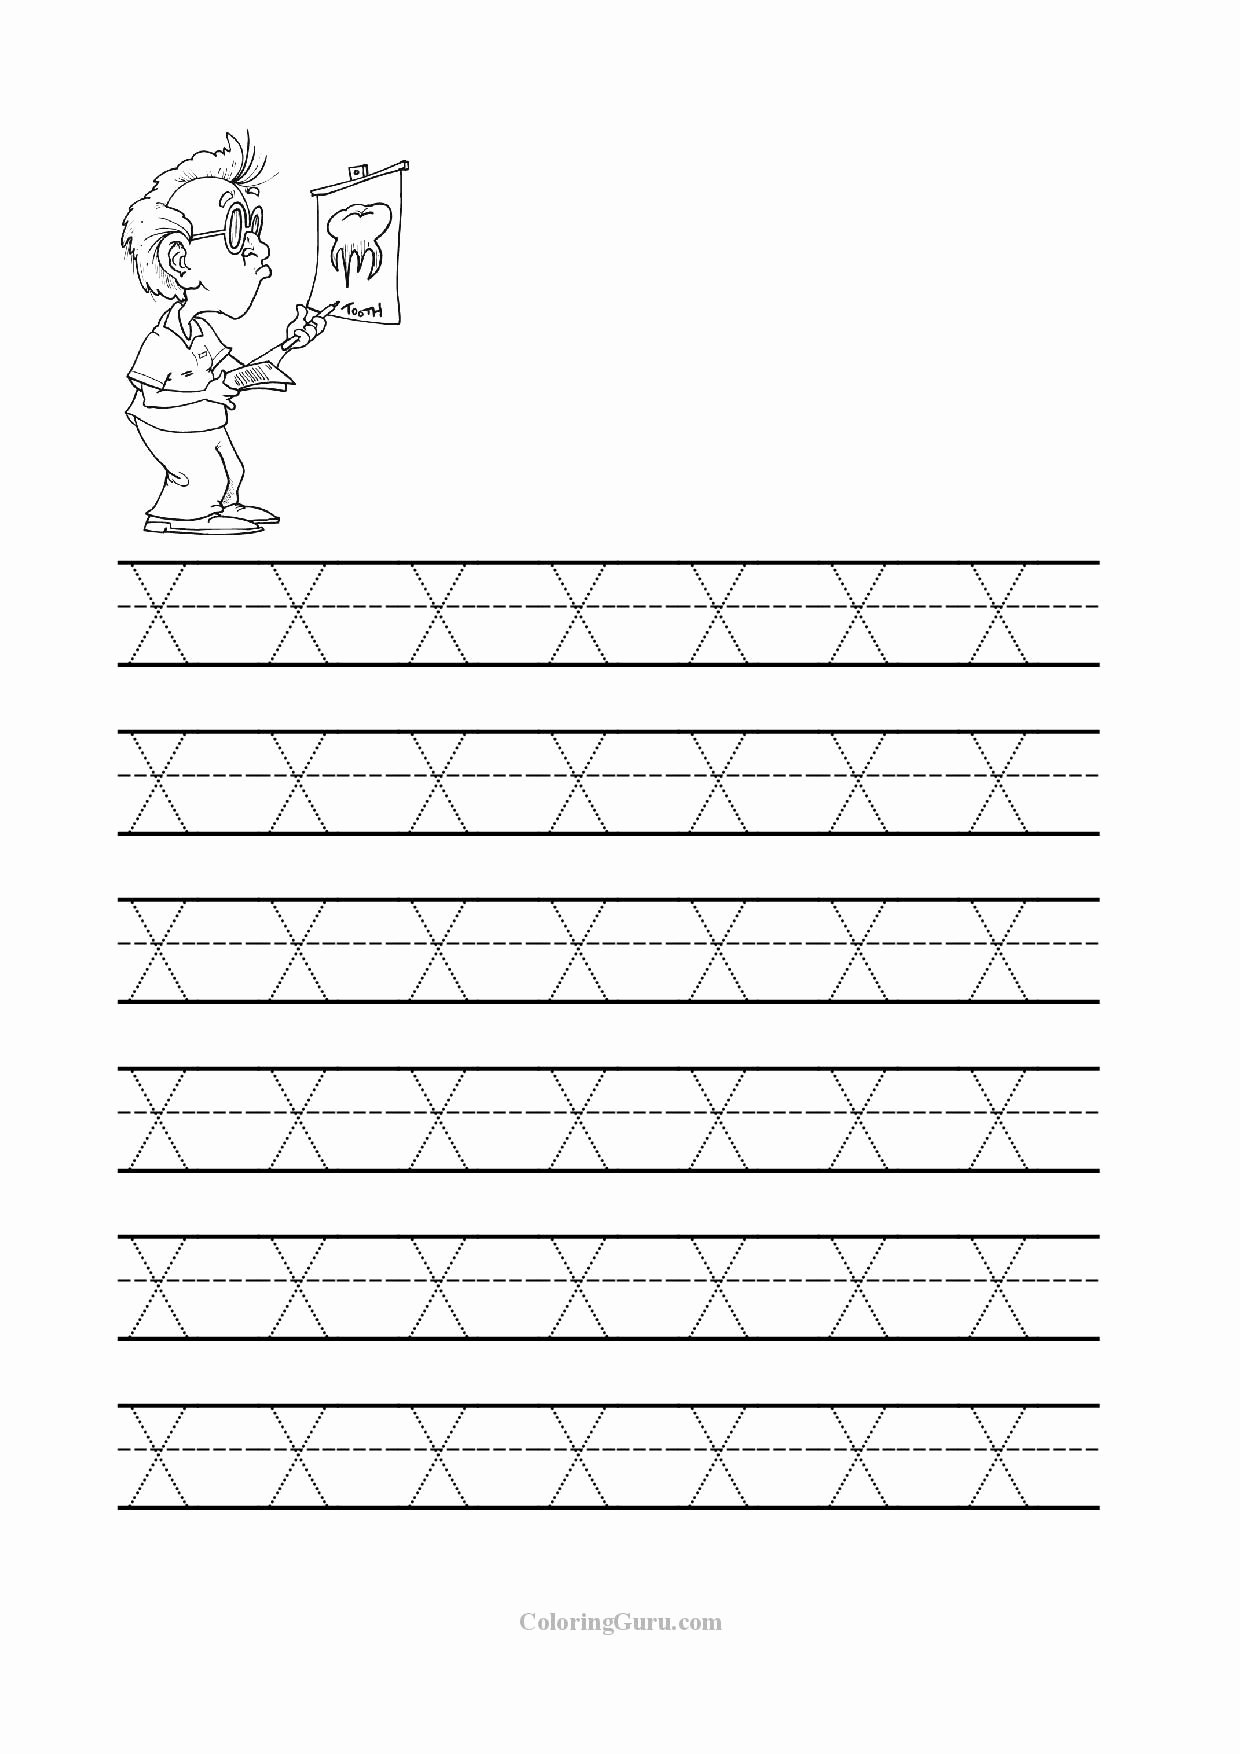 Printable Letter X Worksheets for Preschoolers top Free Printable Tracing Letter X Worksheets for Preschool